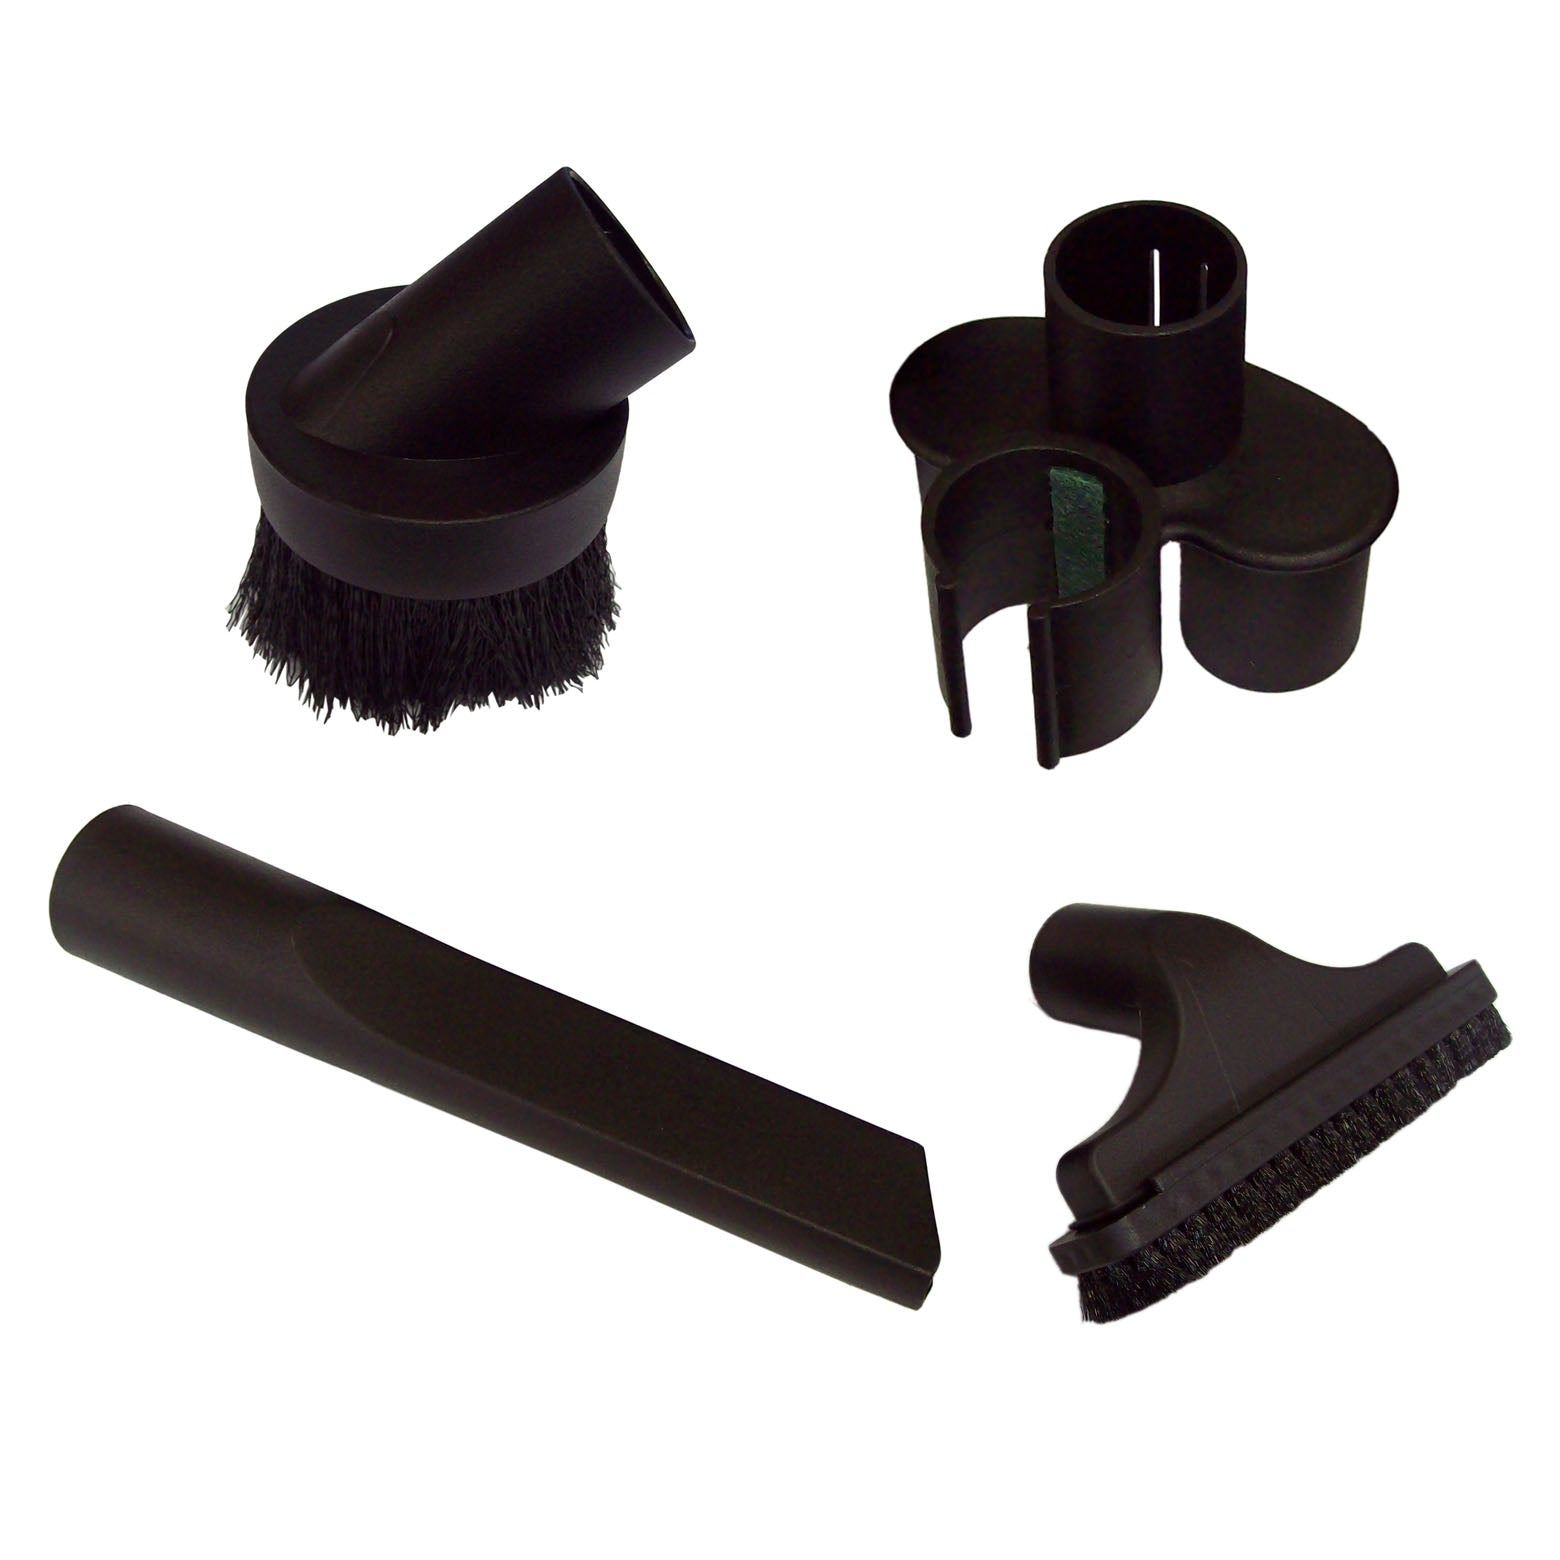 Vac Tool Kit & Caddy 32mm